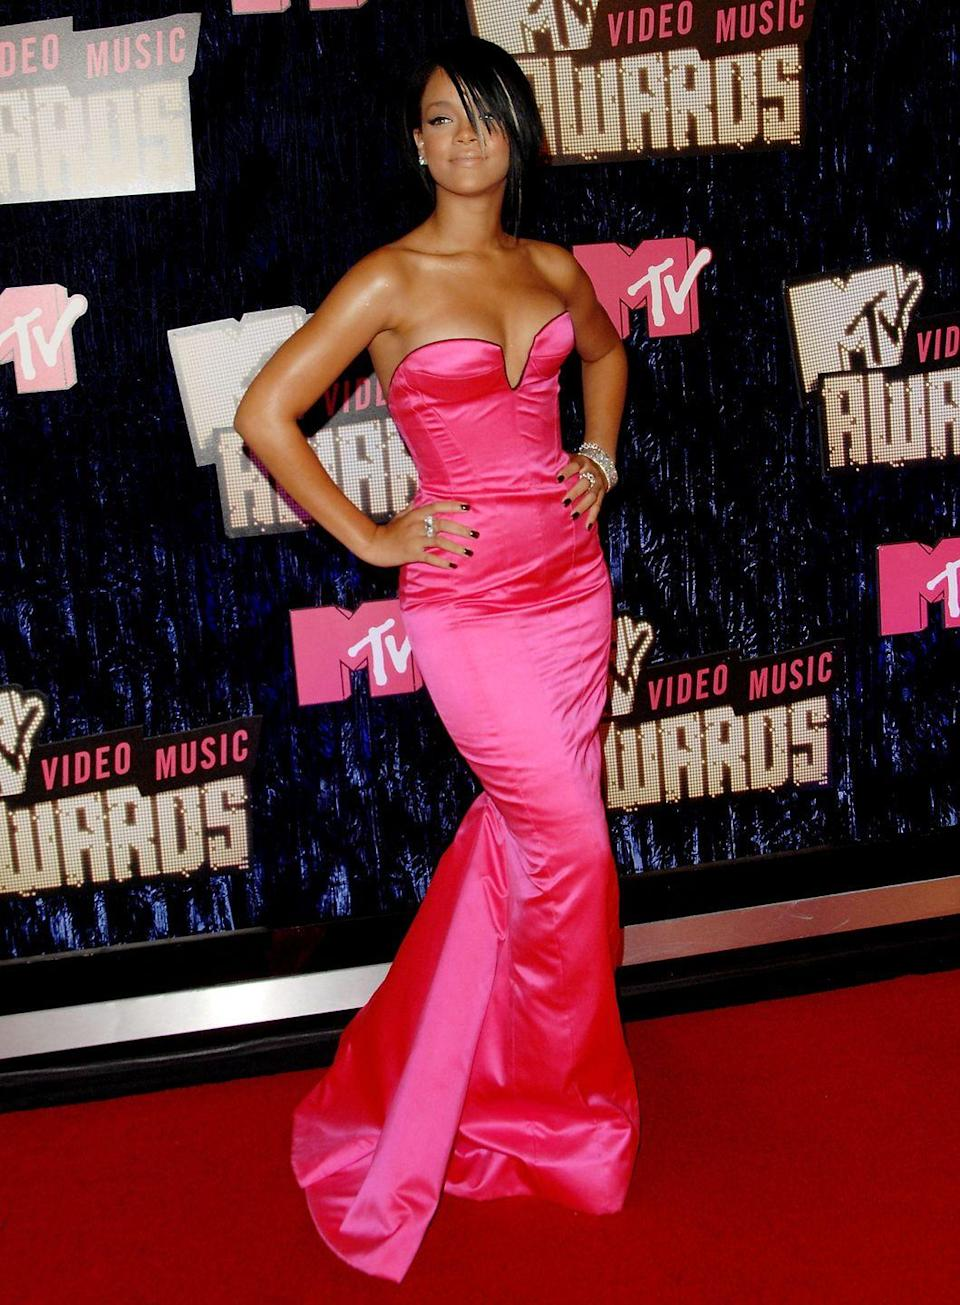 <p>Rihanna showed off her banging curves in this hot-pink, form-fitting gown in 2007.</p>